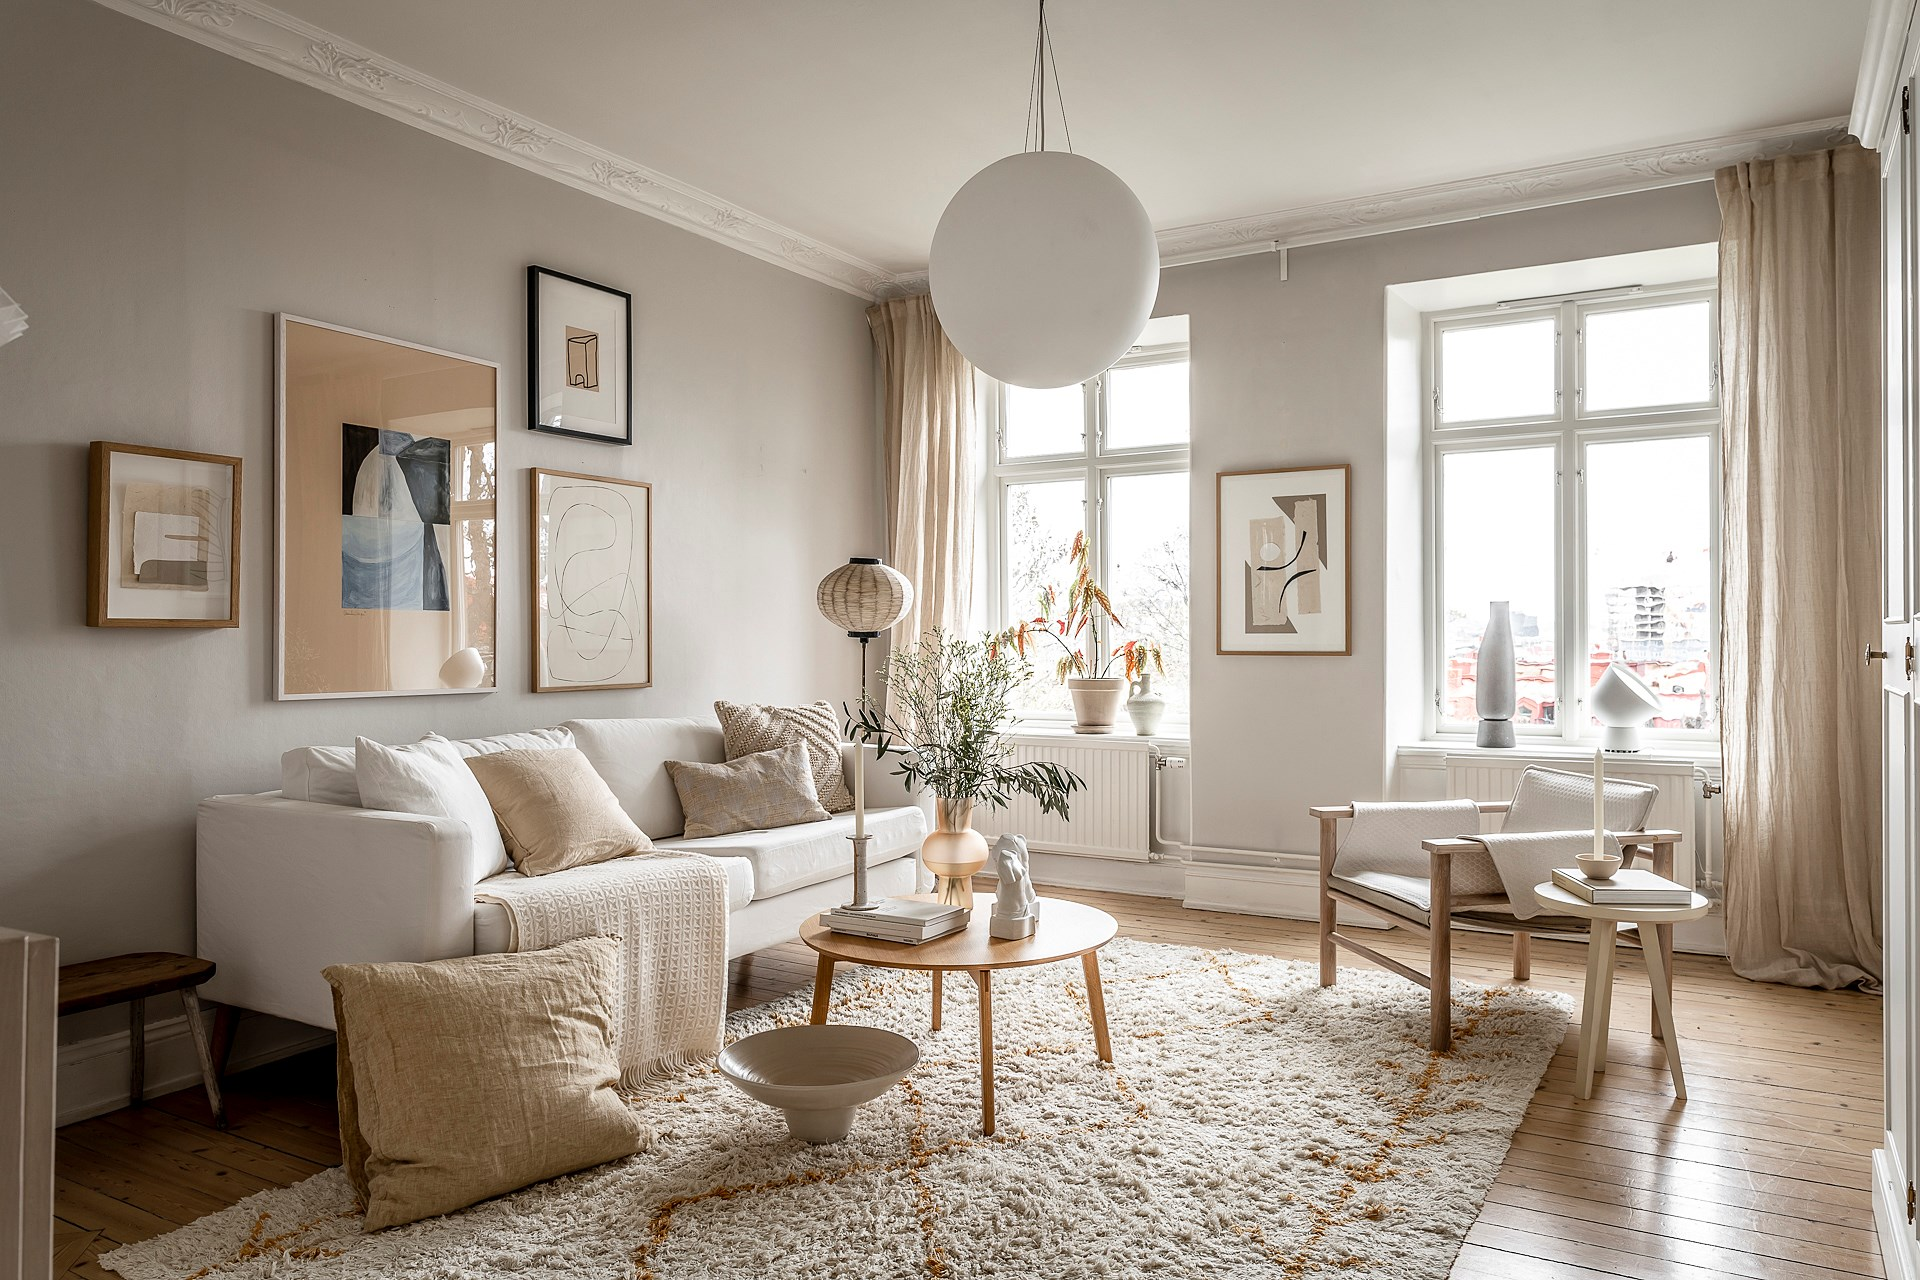 How To Decorate A Neutral Living Room, Neutral Living Room